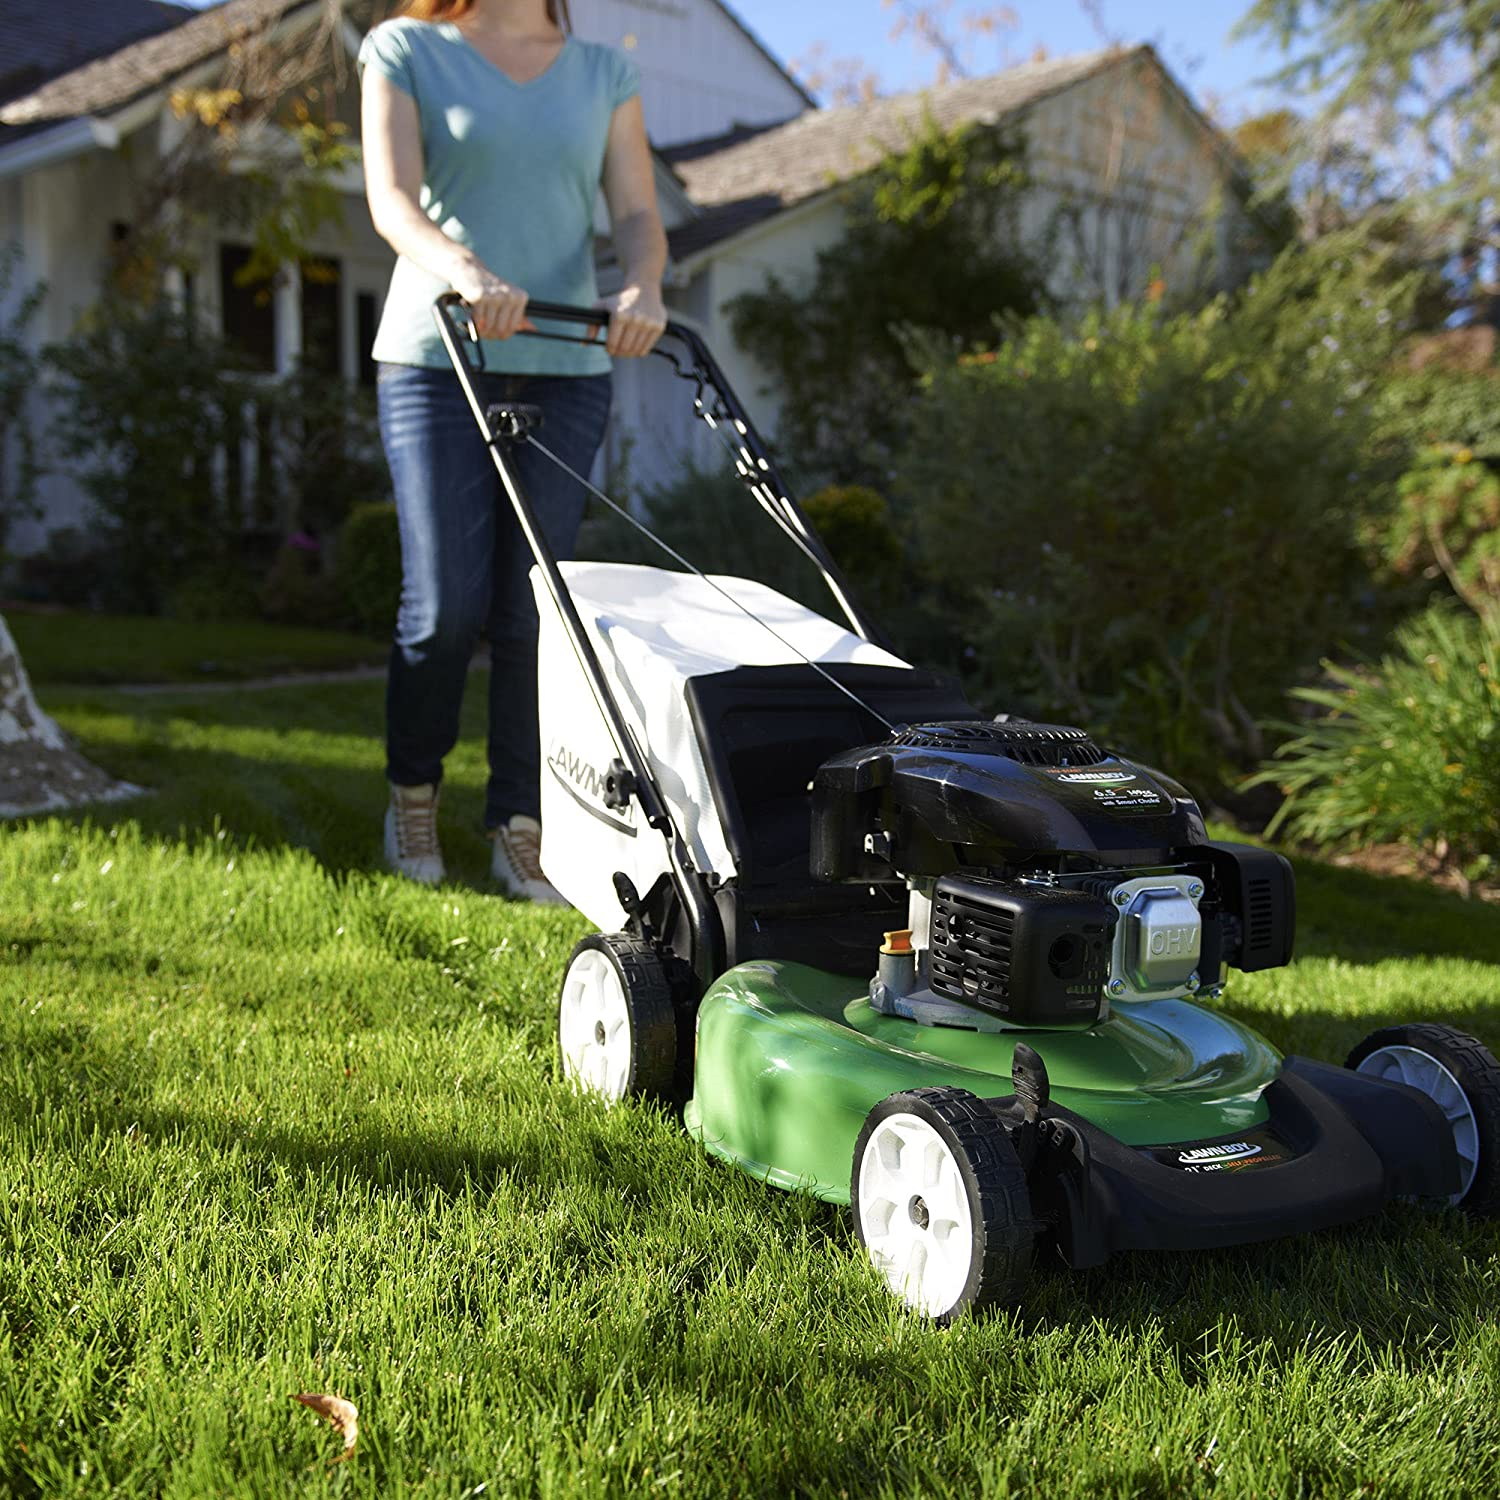 Lawn-Boy 17732 Carb Compliant Kohler XT6 OHV, Rear Wheel Drive Self Propelled Gas Lawn Mower